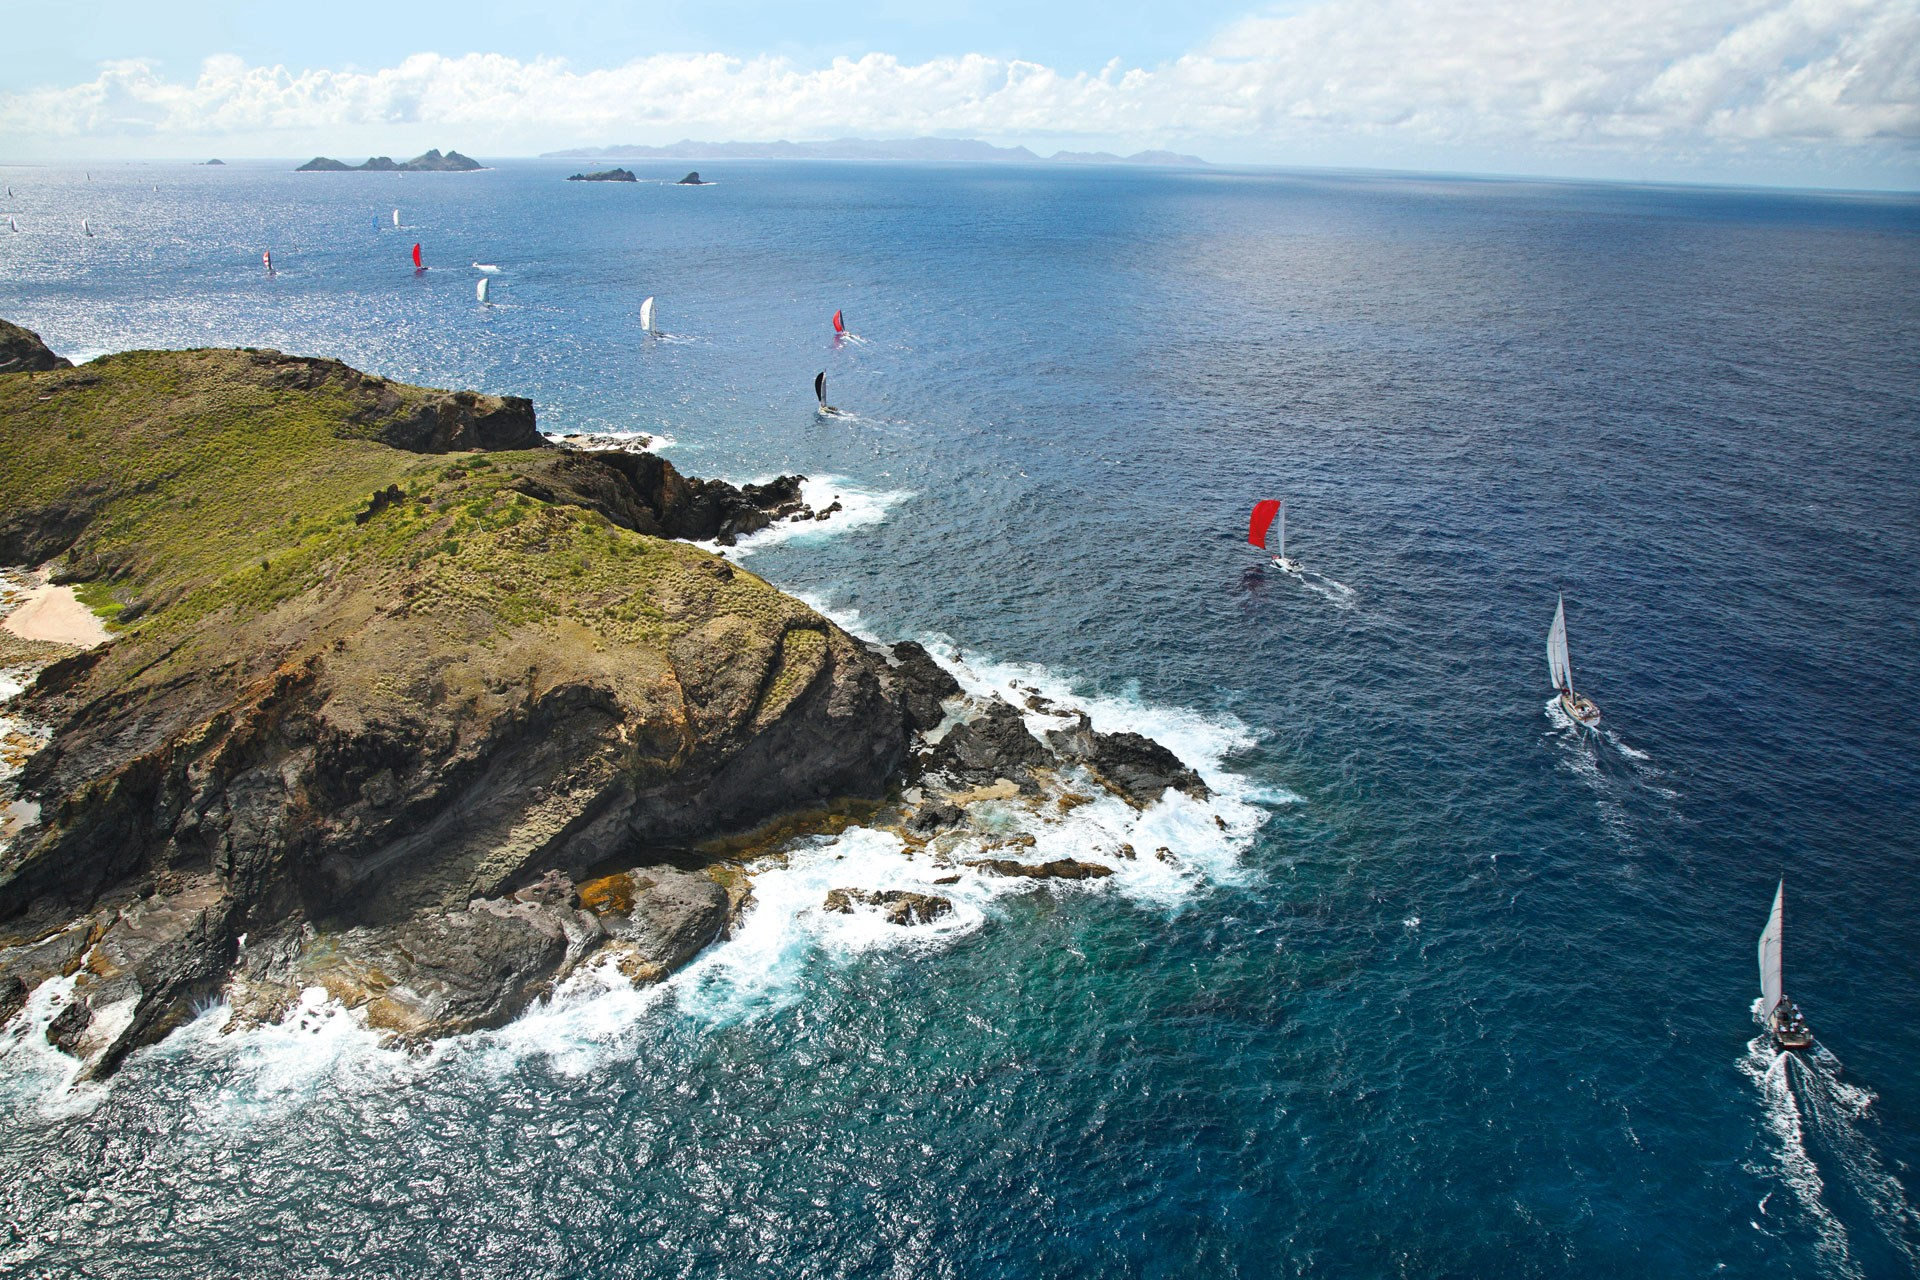 st-barths-yachts-in-voiles-de-saint-barth-conde-nast-traveller-22oct14-tim-wright